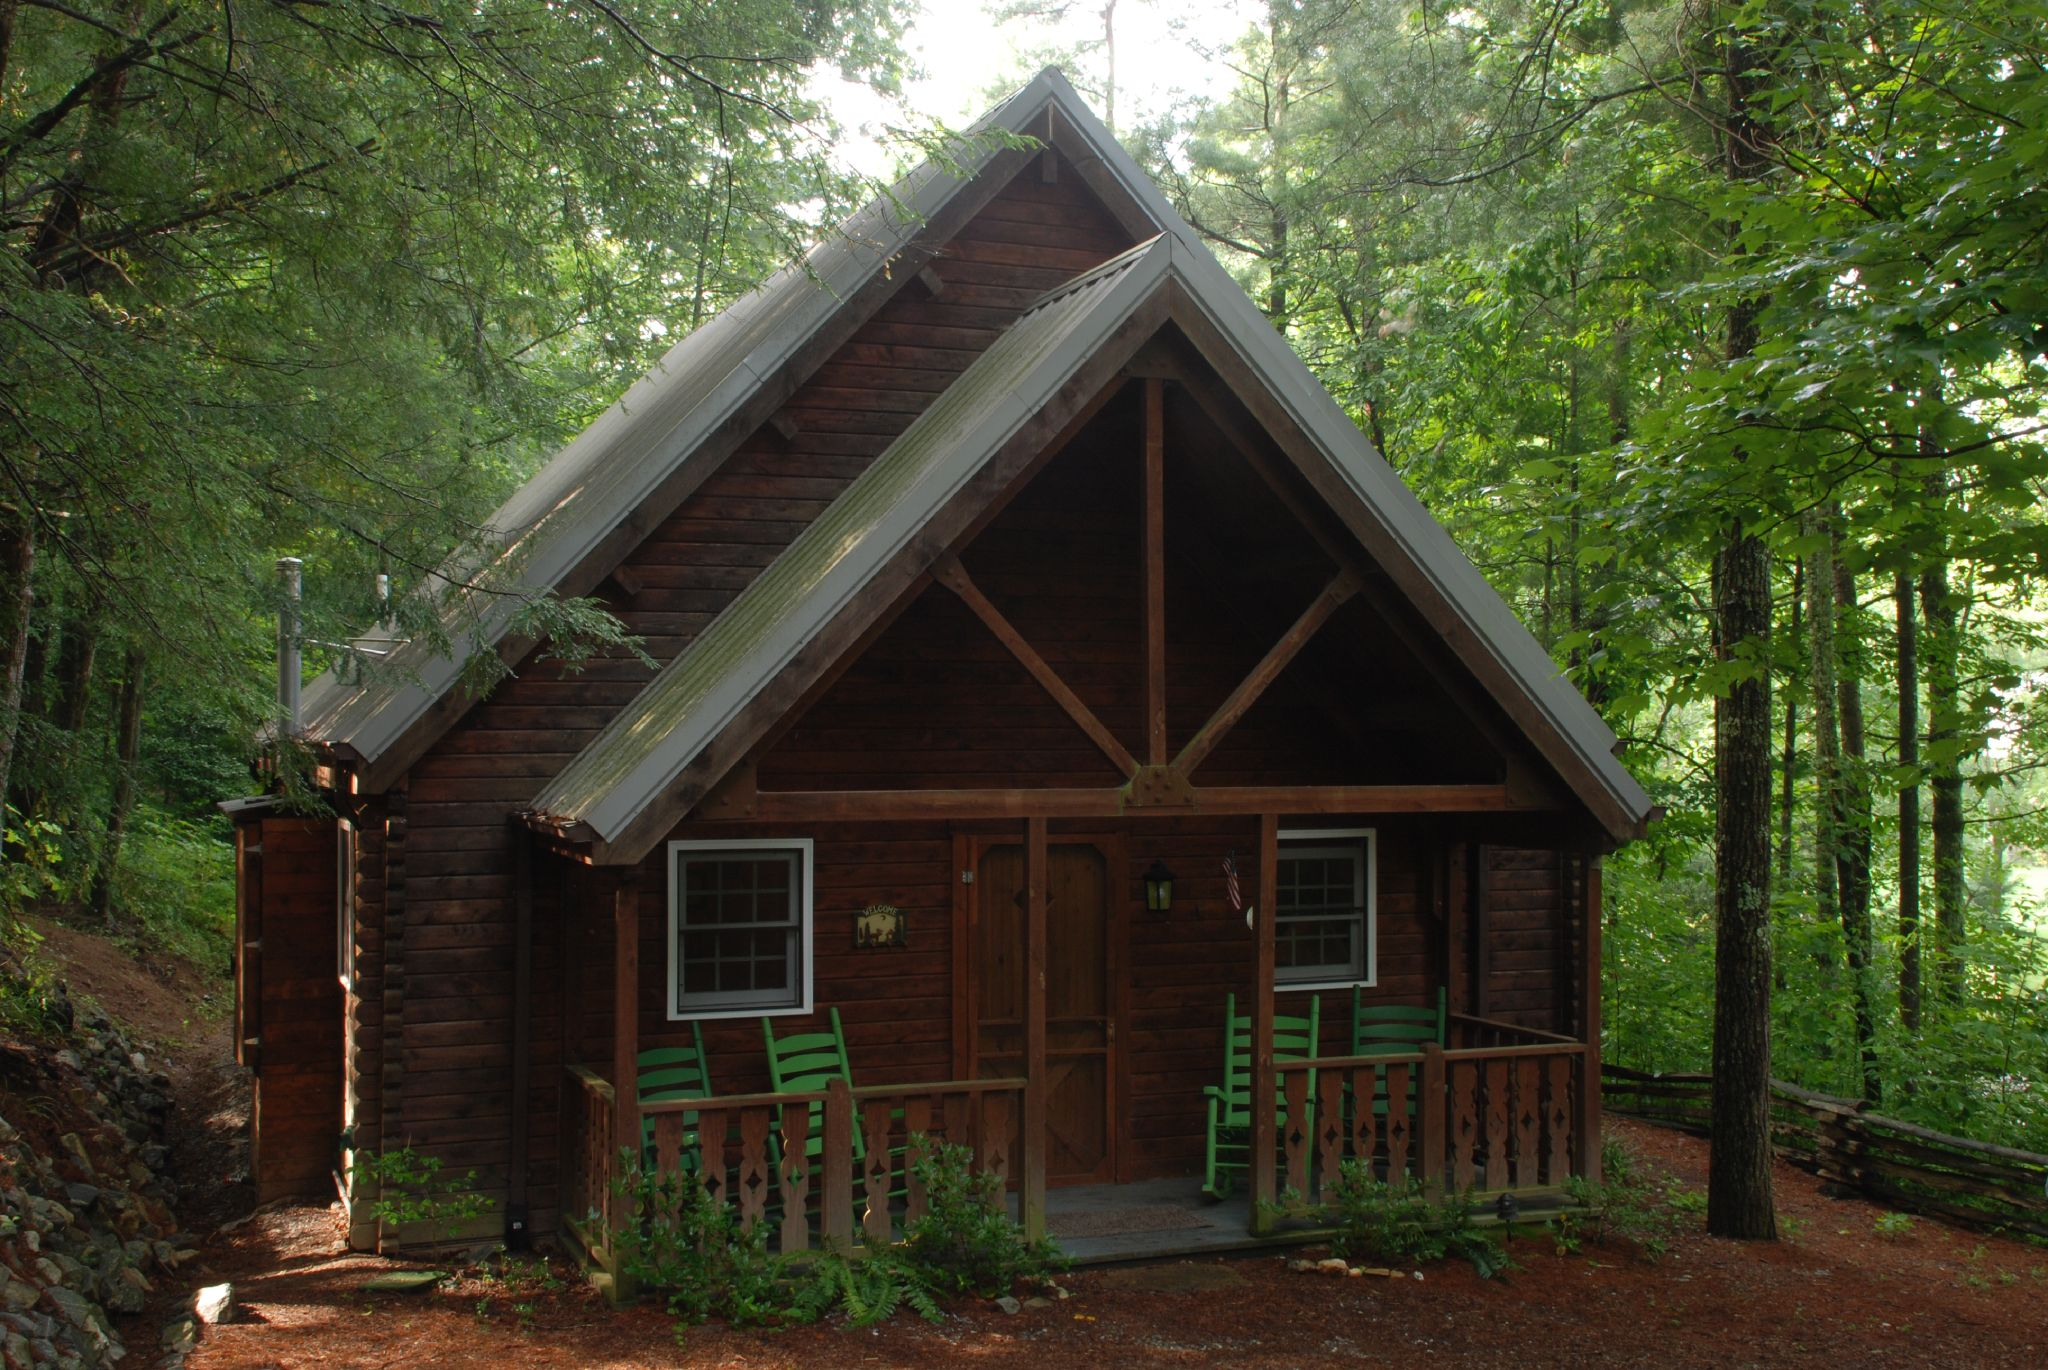 carolina stock on images sale pinterest sc way gallery of cherokee for nc bears mountains log awesome new vacation cabin cabins rentals best north in